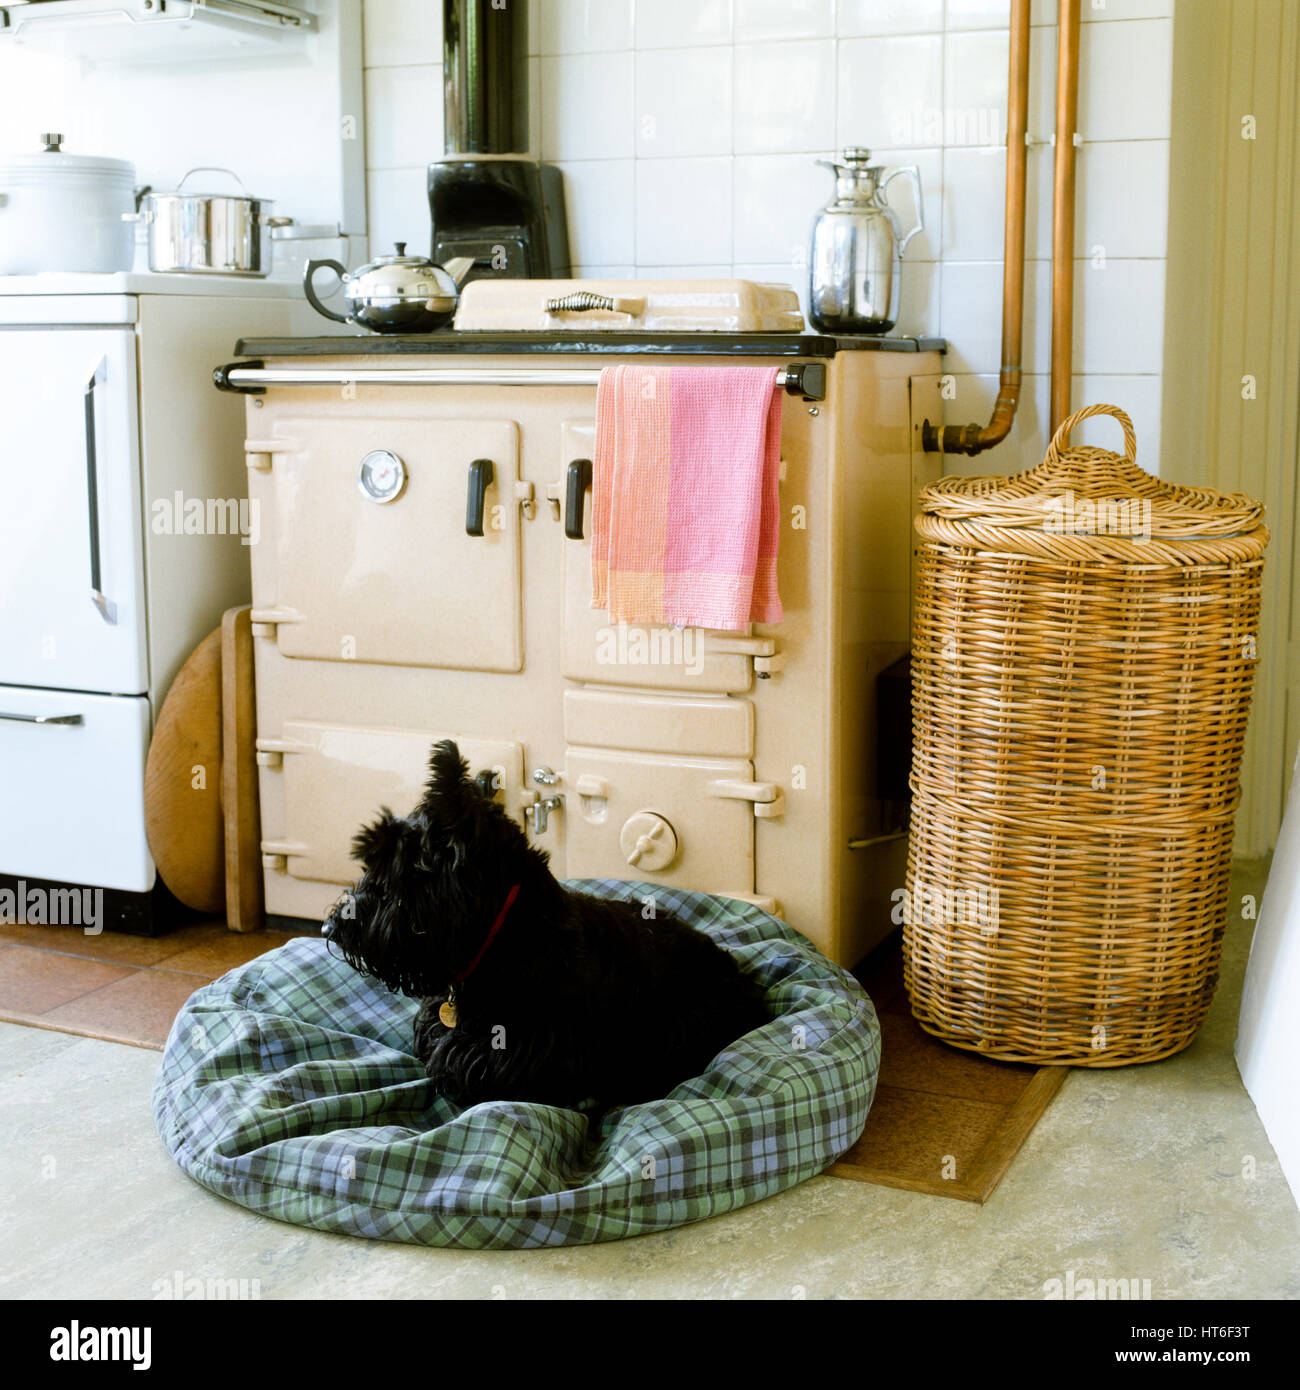 Dog on a dog bed in front of an oven. - Stock Image